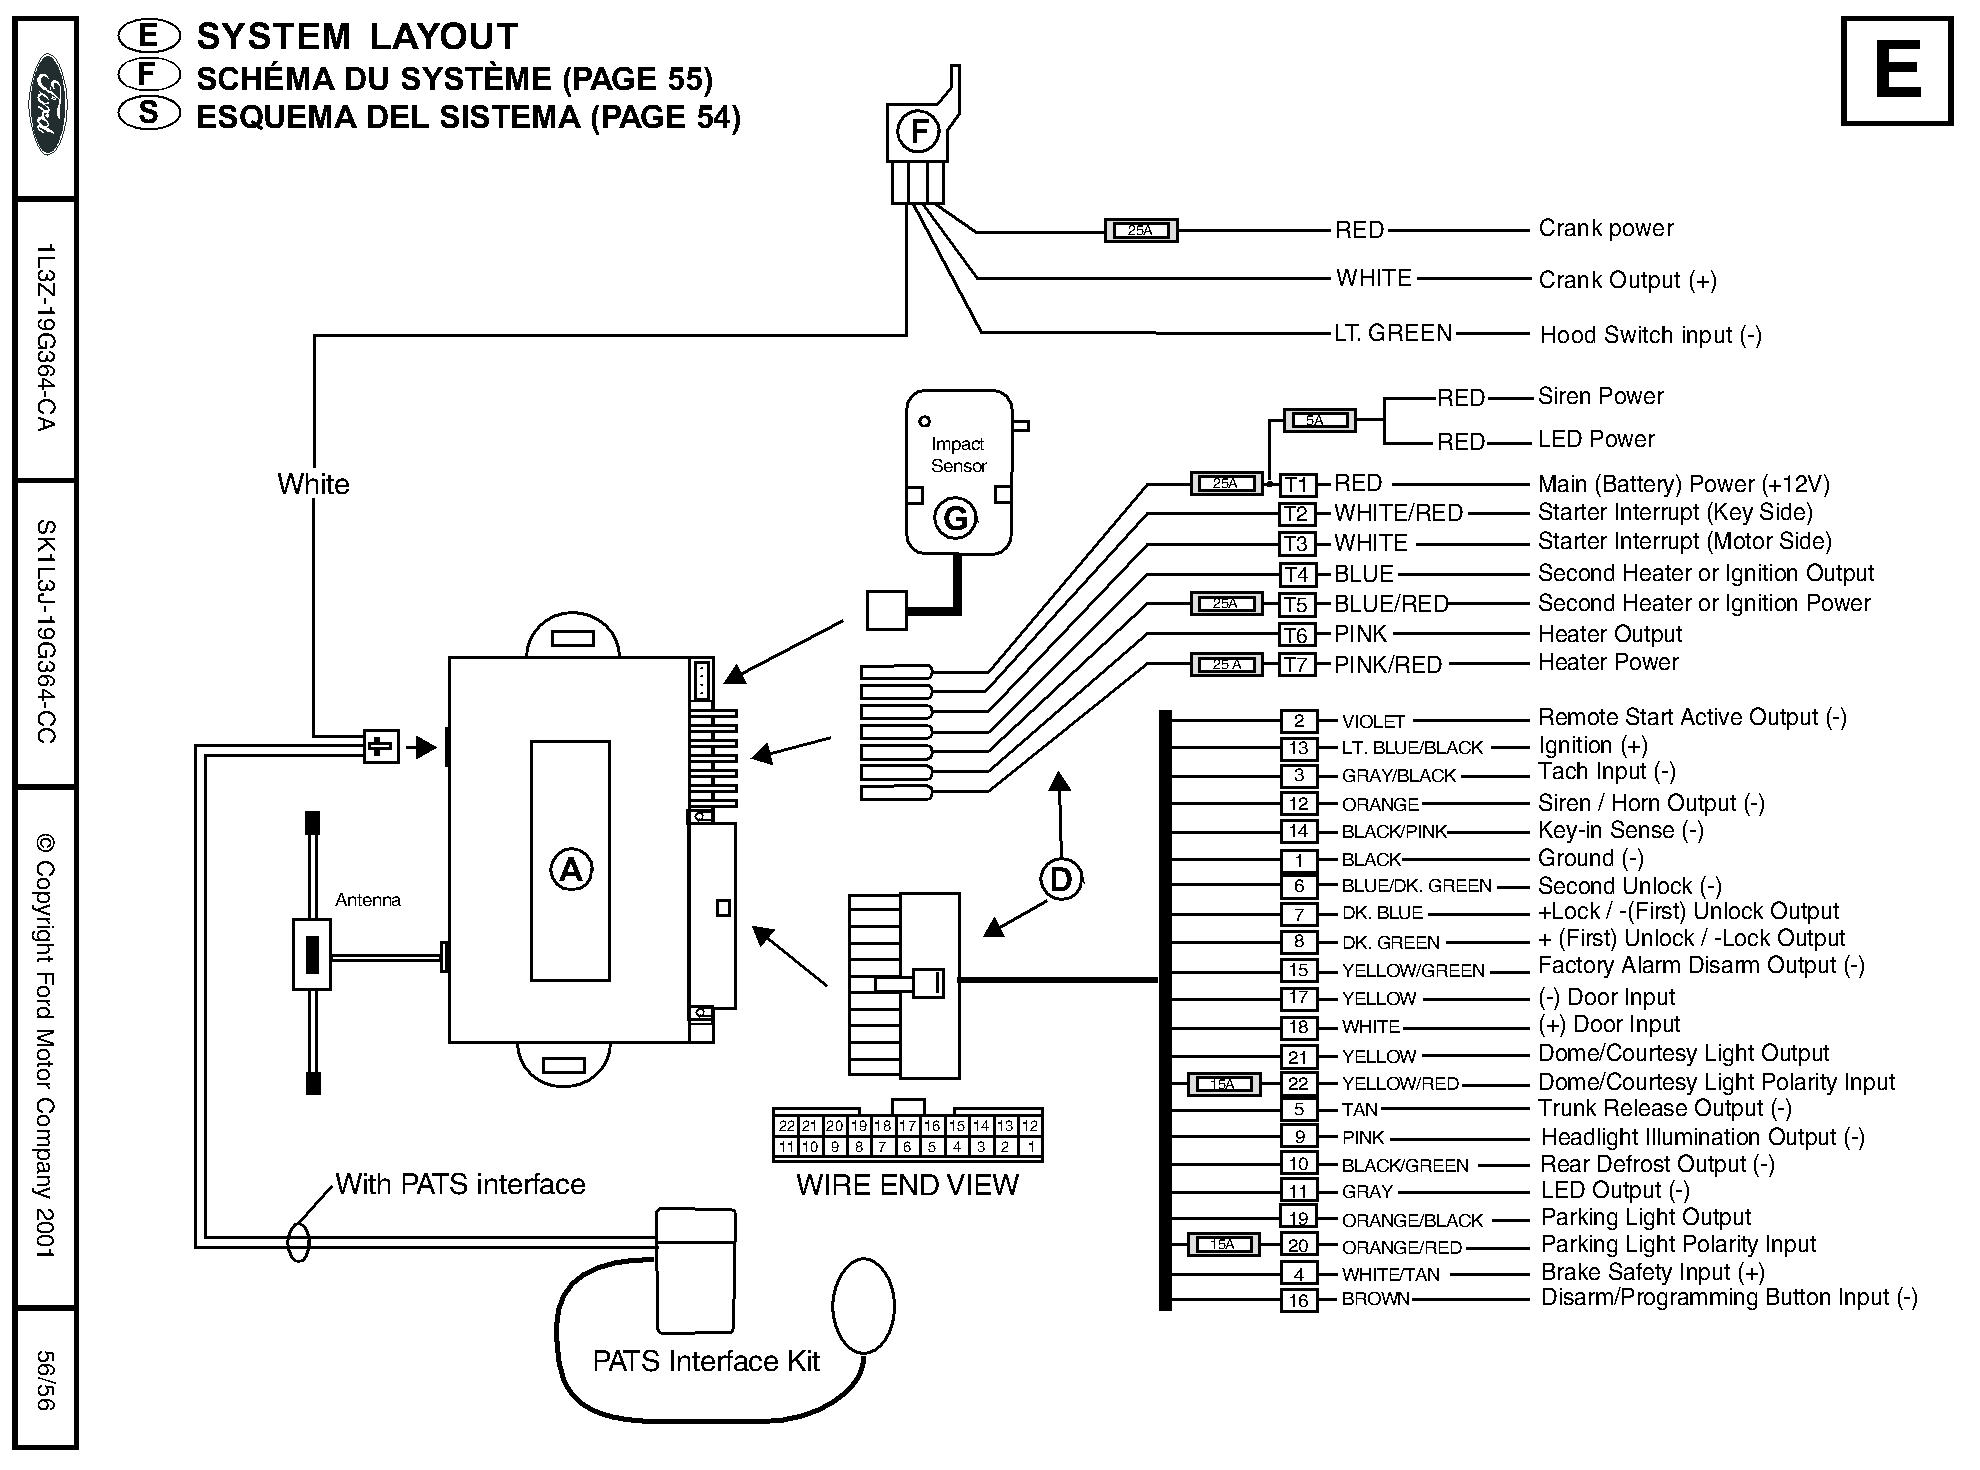 Volkswagen Jetta Fuse Box Diagram 2013 moreover 56 Crown Victoria Wiring Diagram Schematic also Acura Tsx 2004 Fuse Diagram also RepairGuideContent besides Honda Accord Front Bumper Replacement. on 2005 acura tl headlight wiring diagram